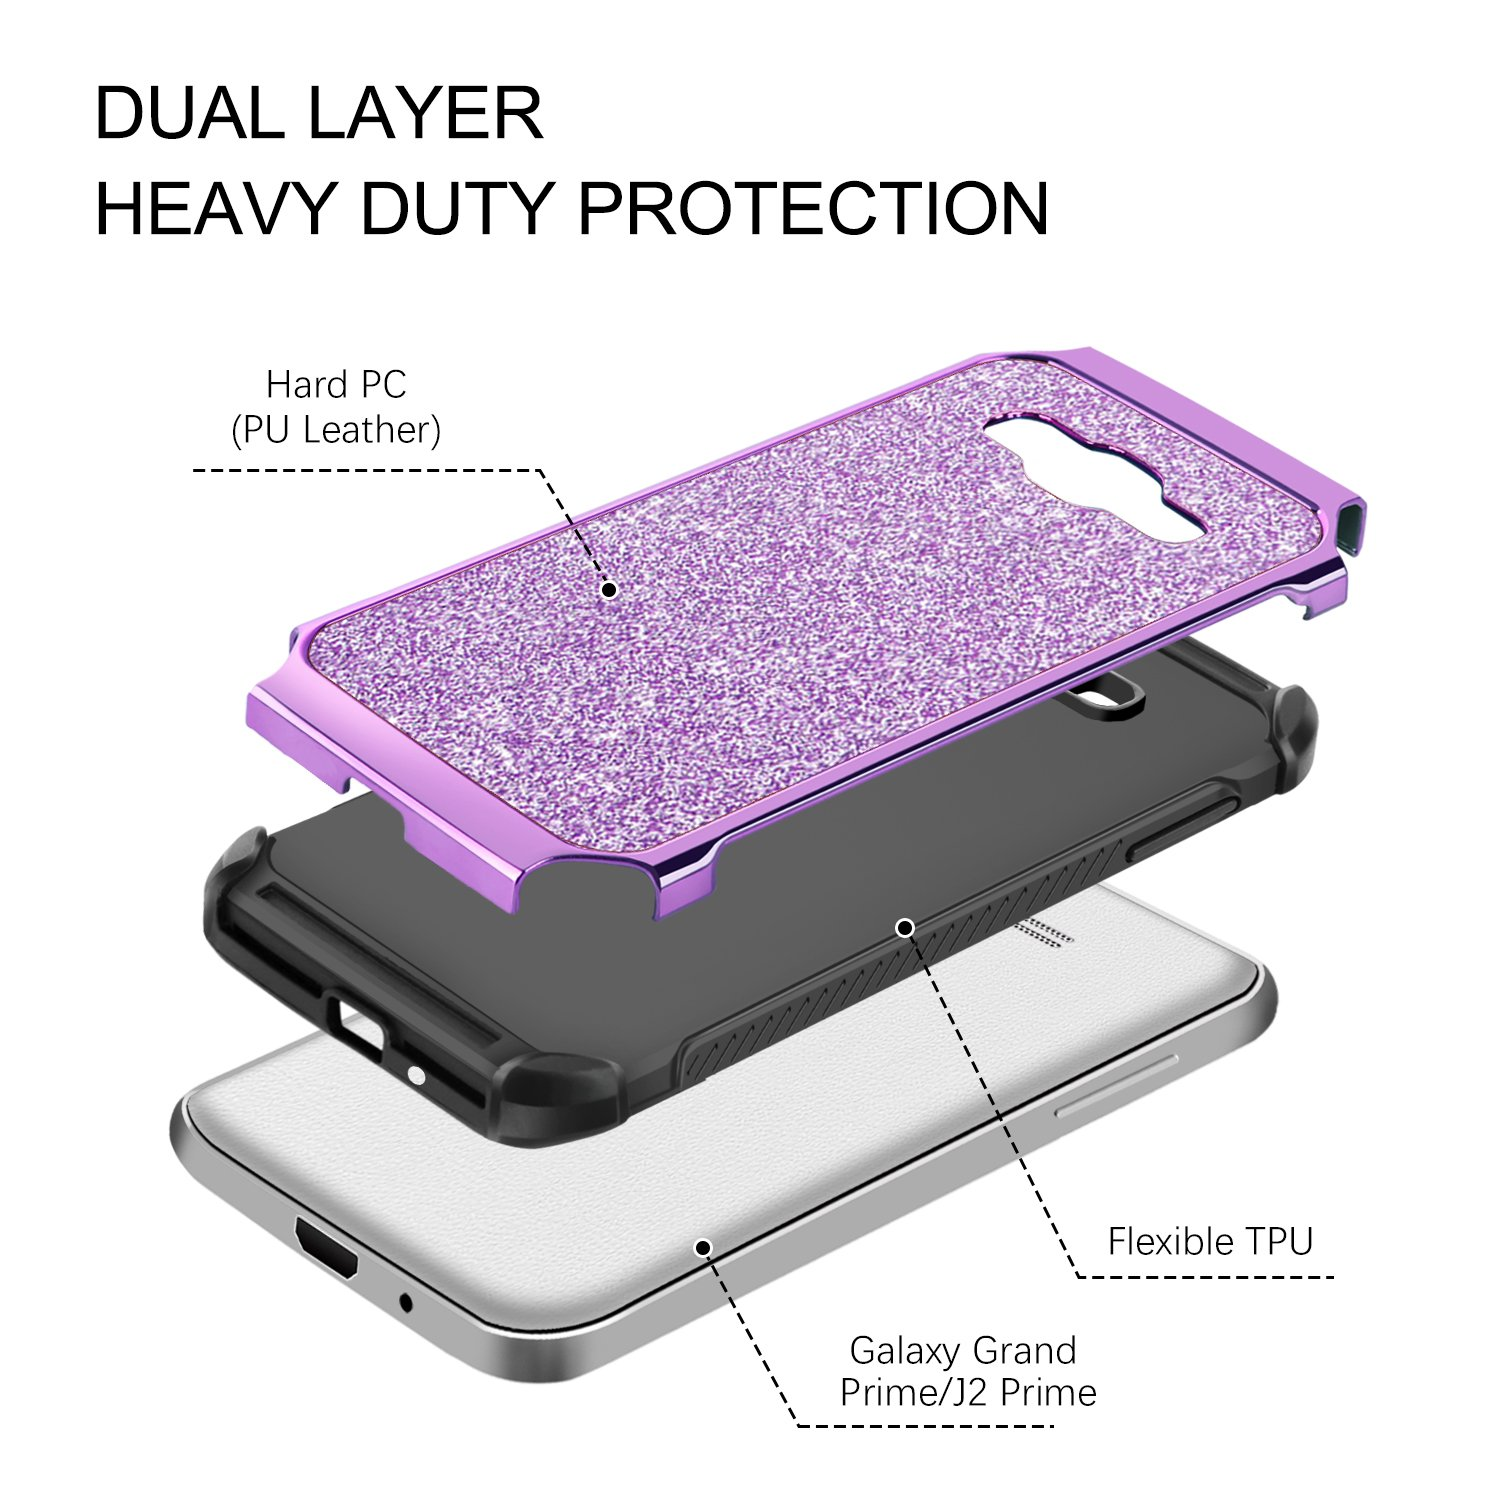 Amazon YINLAI Galaxy J2 Prime Galaxy Case Grand Prime Case Glitter Bling 2 in 1 Slim Hybrid TPU Bumper Hard PC Cover Sparkly Phone Cases patible